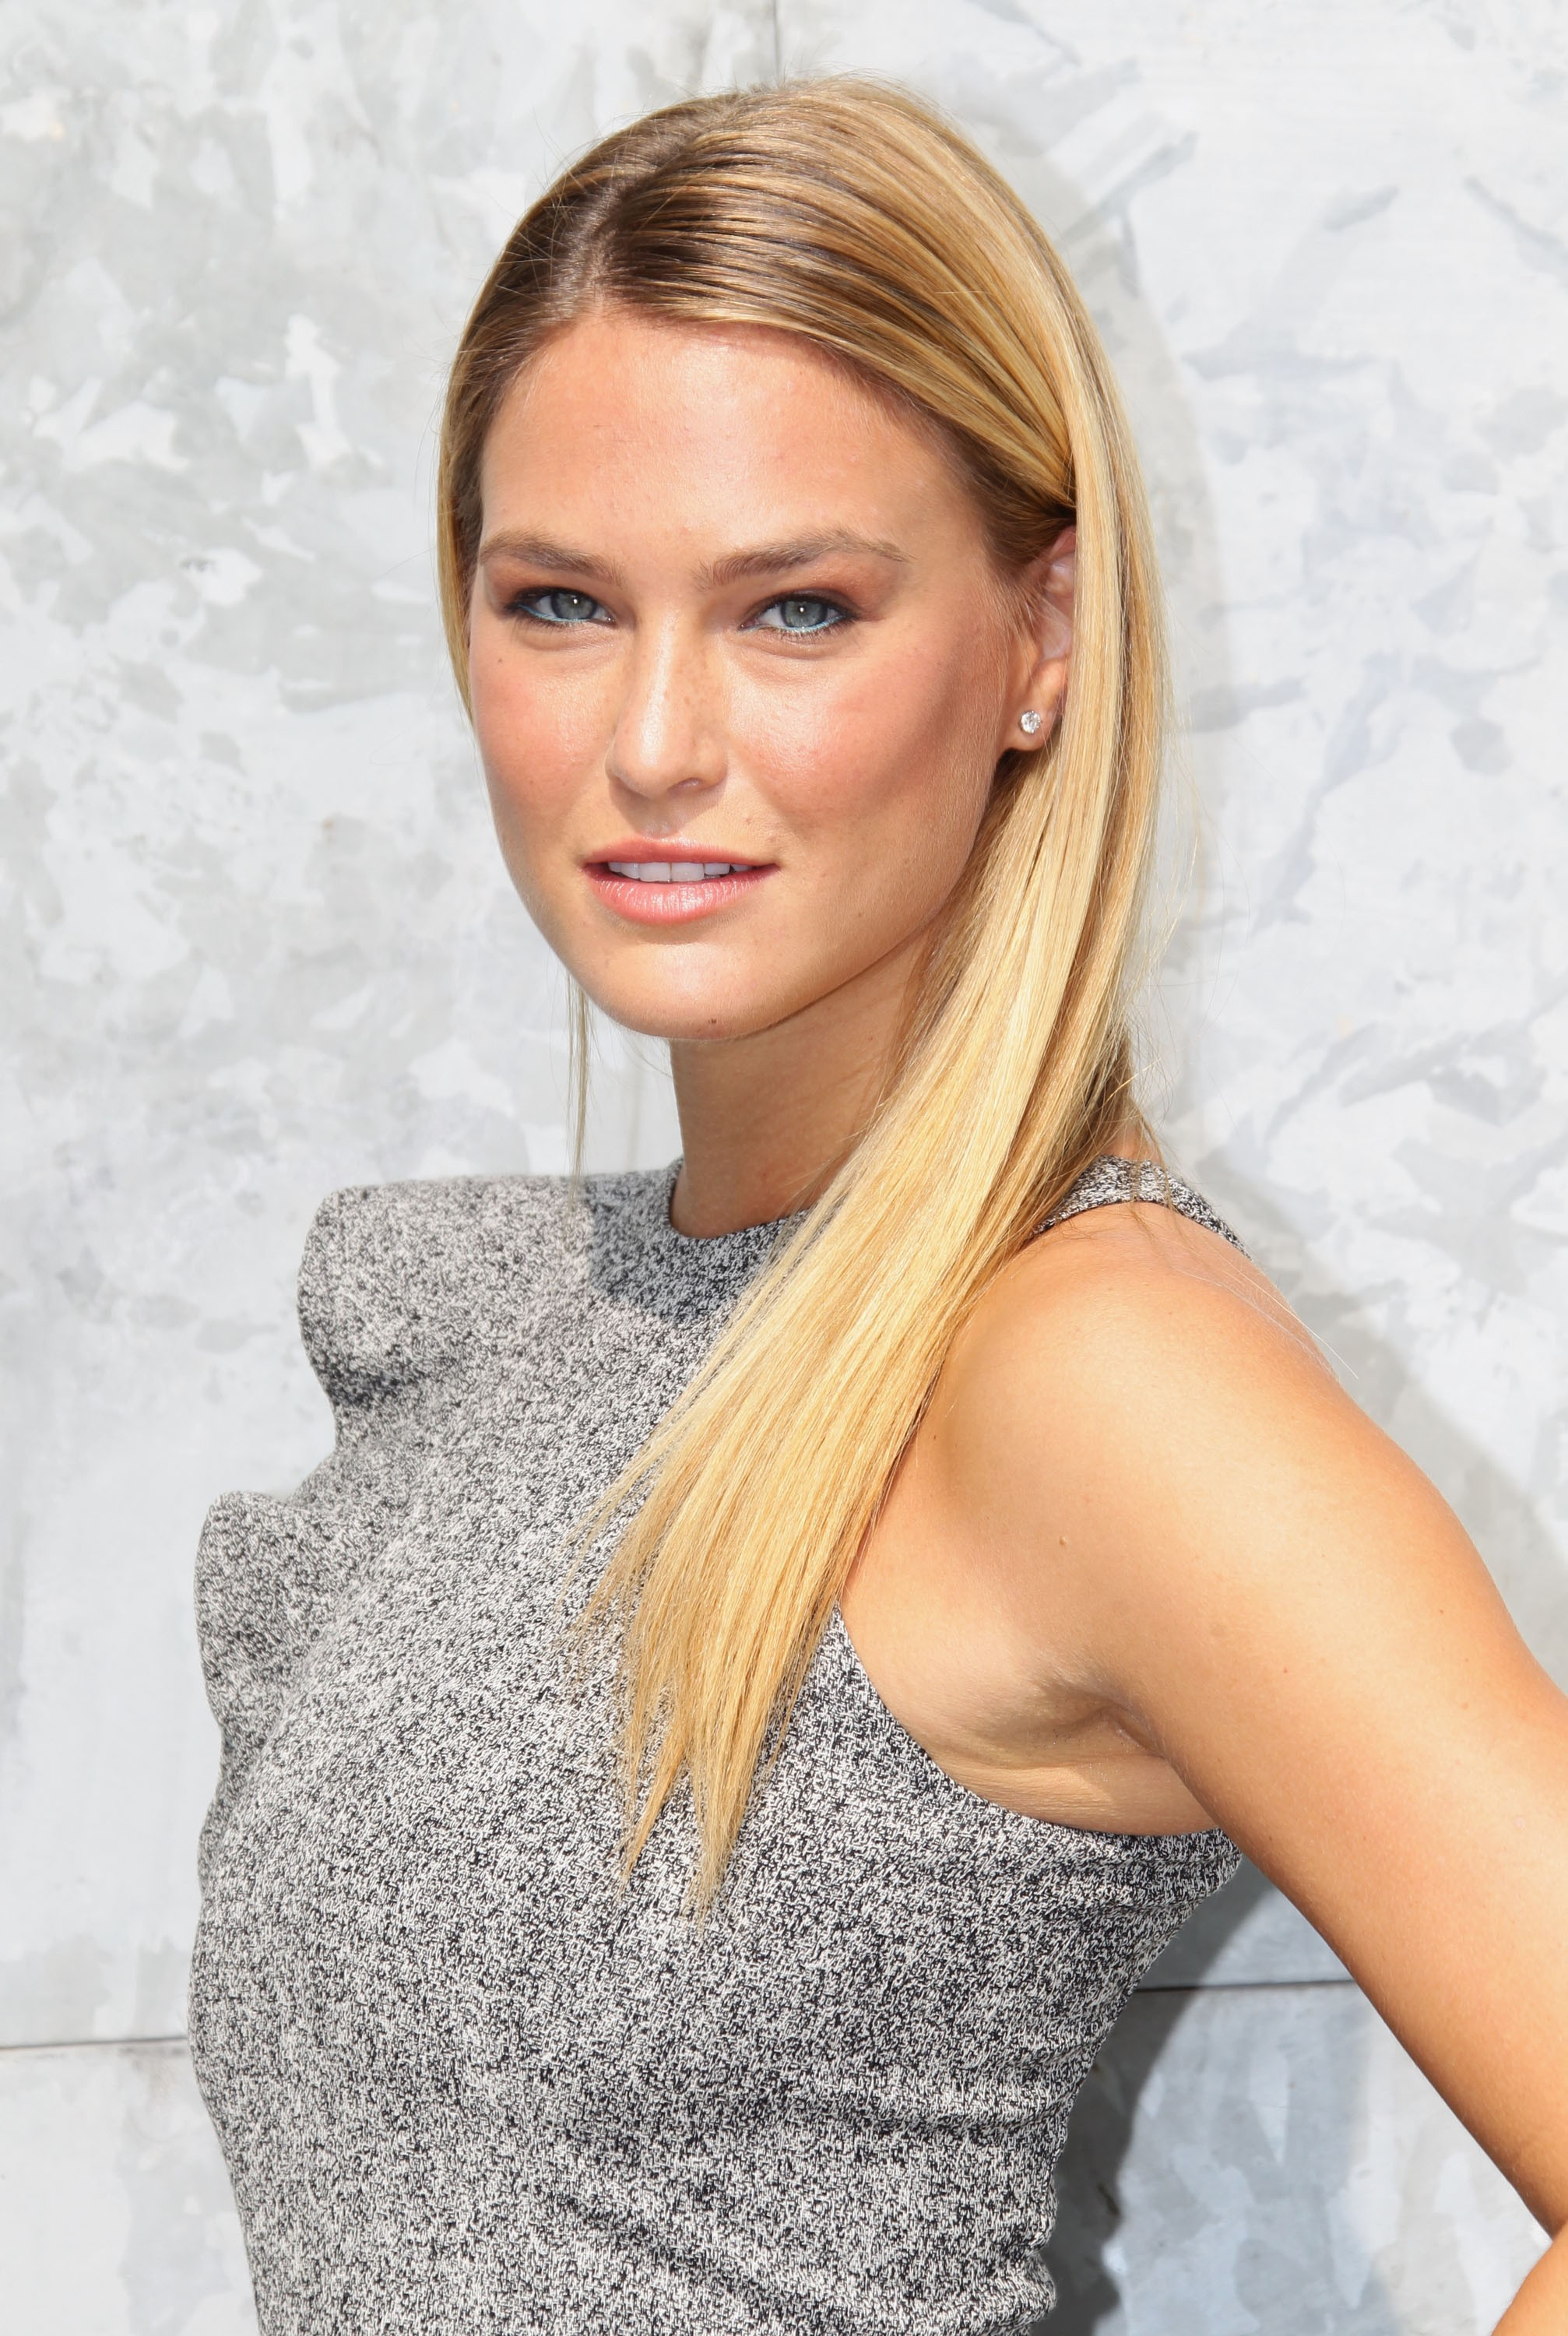 Bar Refaeli Wallpapers... Bar Refaeli